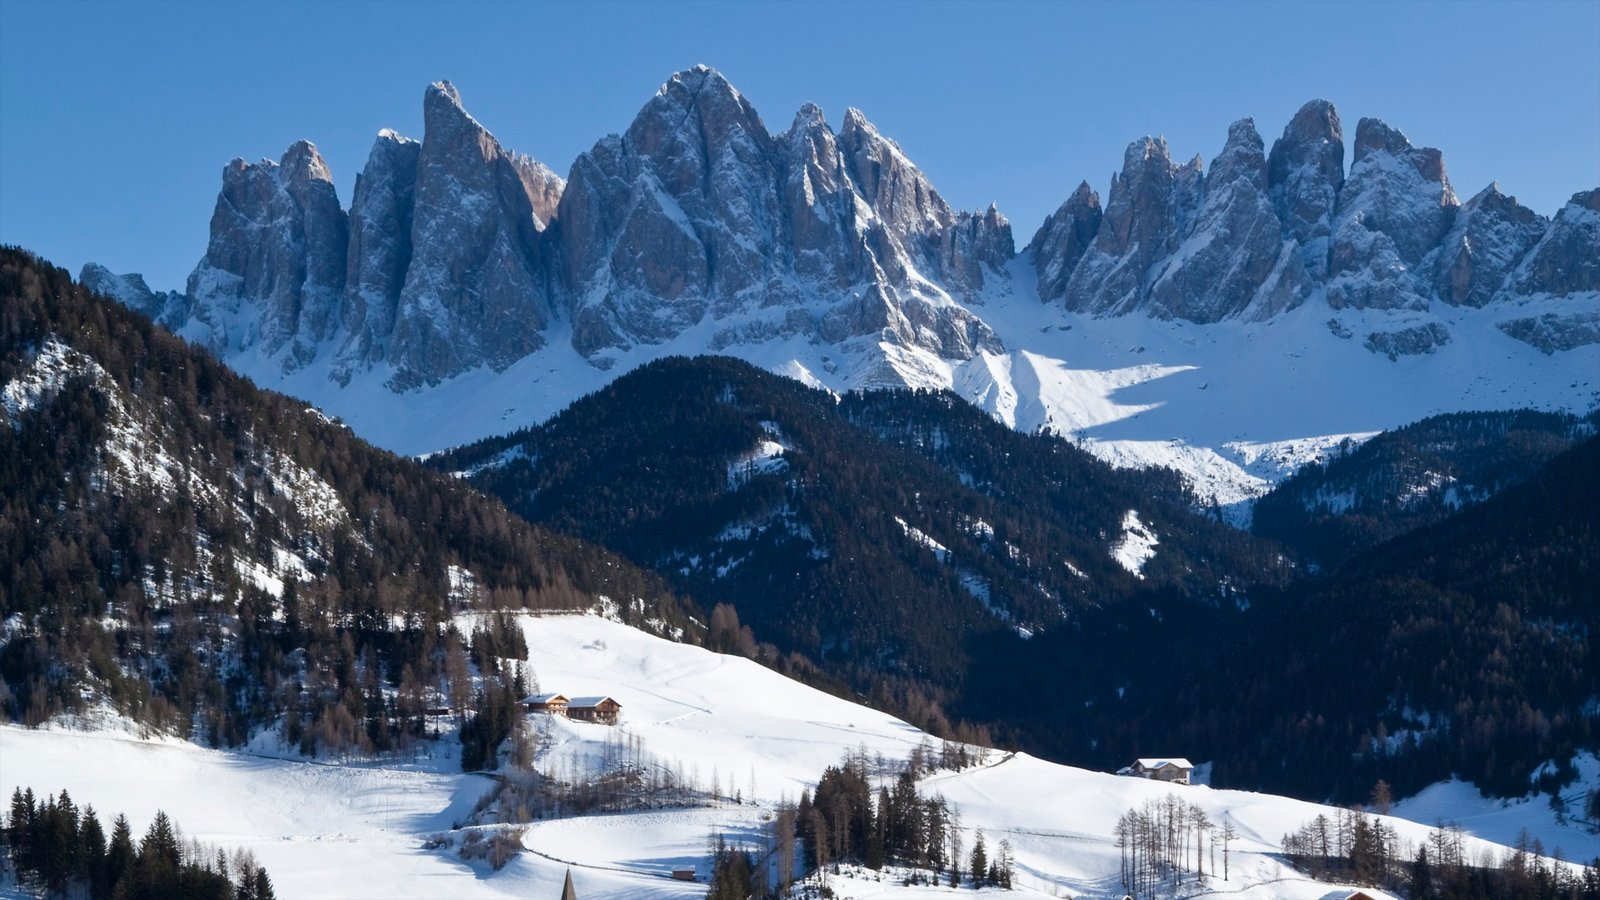 Alto Adige - South Tyrol featuring tranquil scenes, snow and mountains